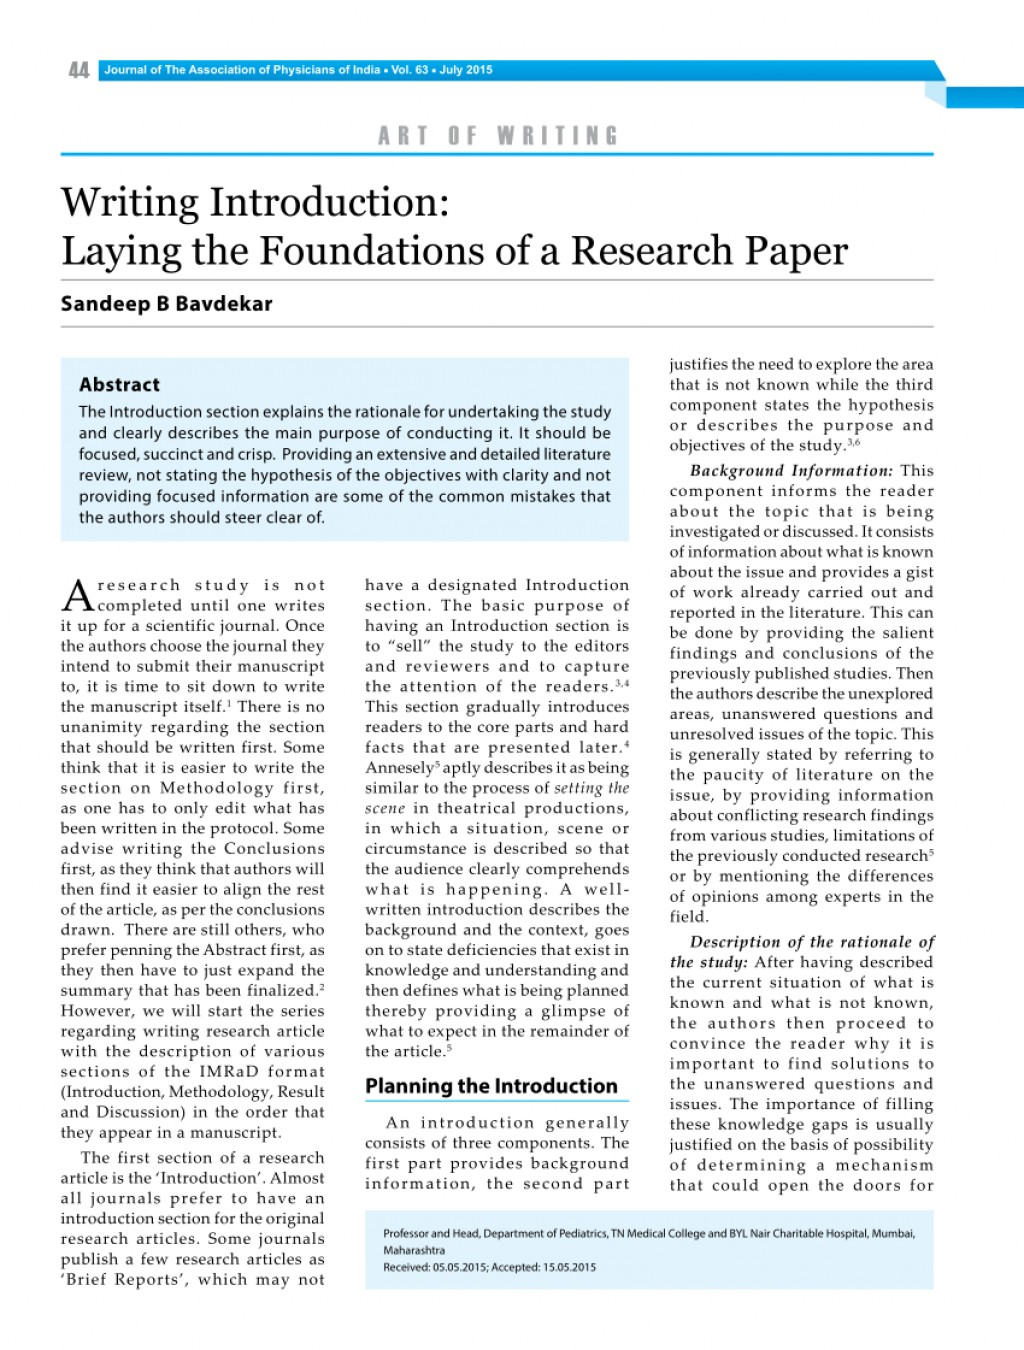 013 Research Paper What Is The Purpose Of Impressive A Conducting Critiquing Process Writing Large